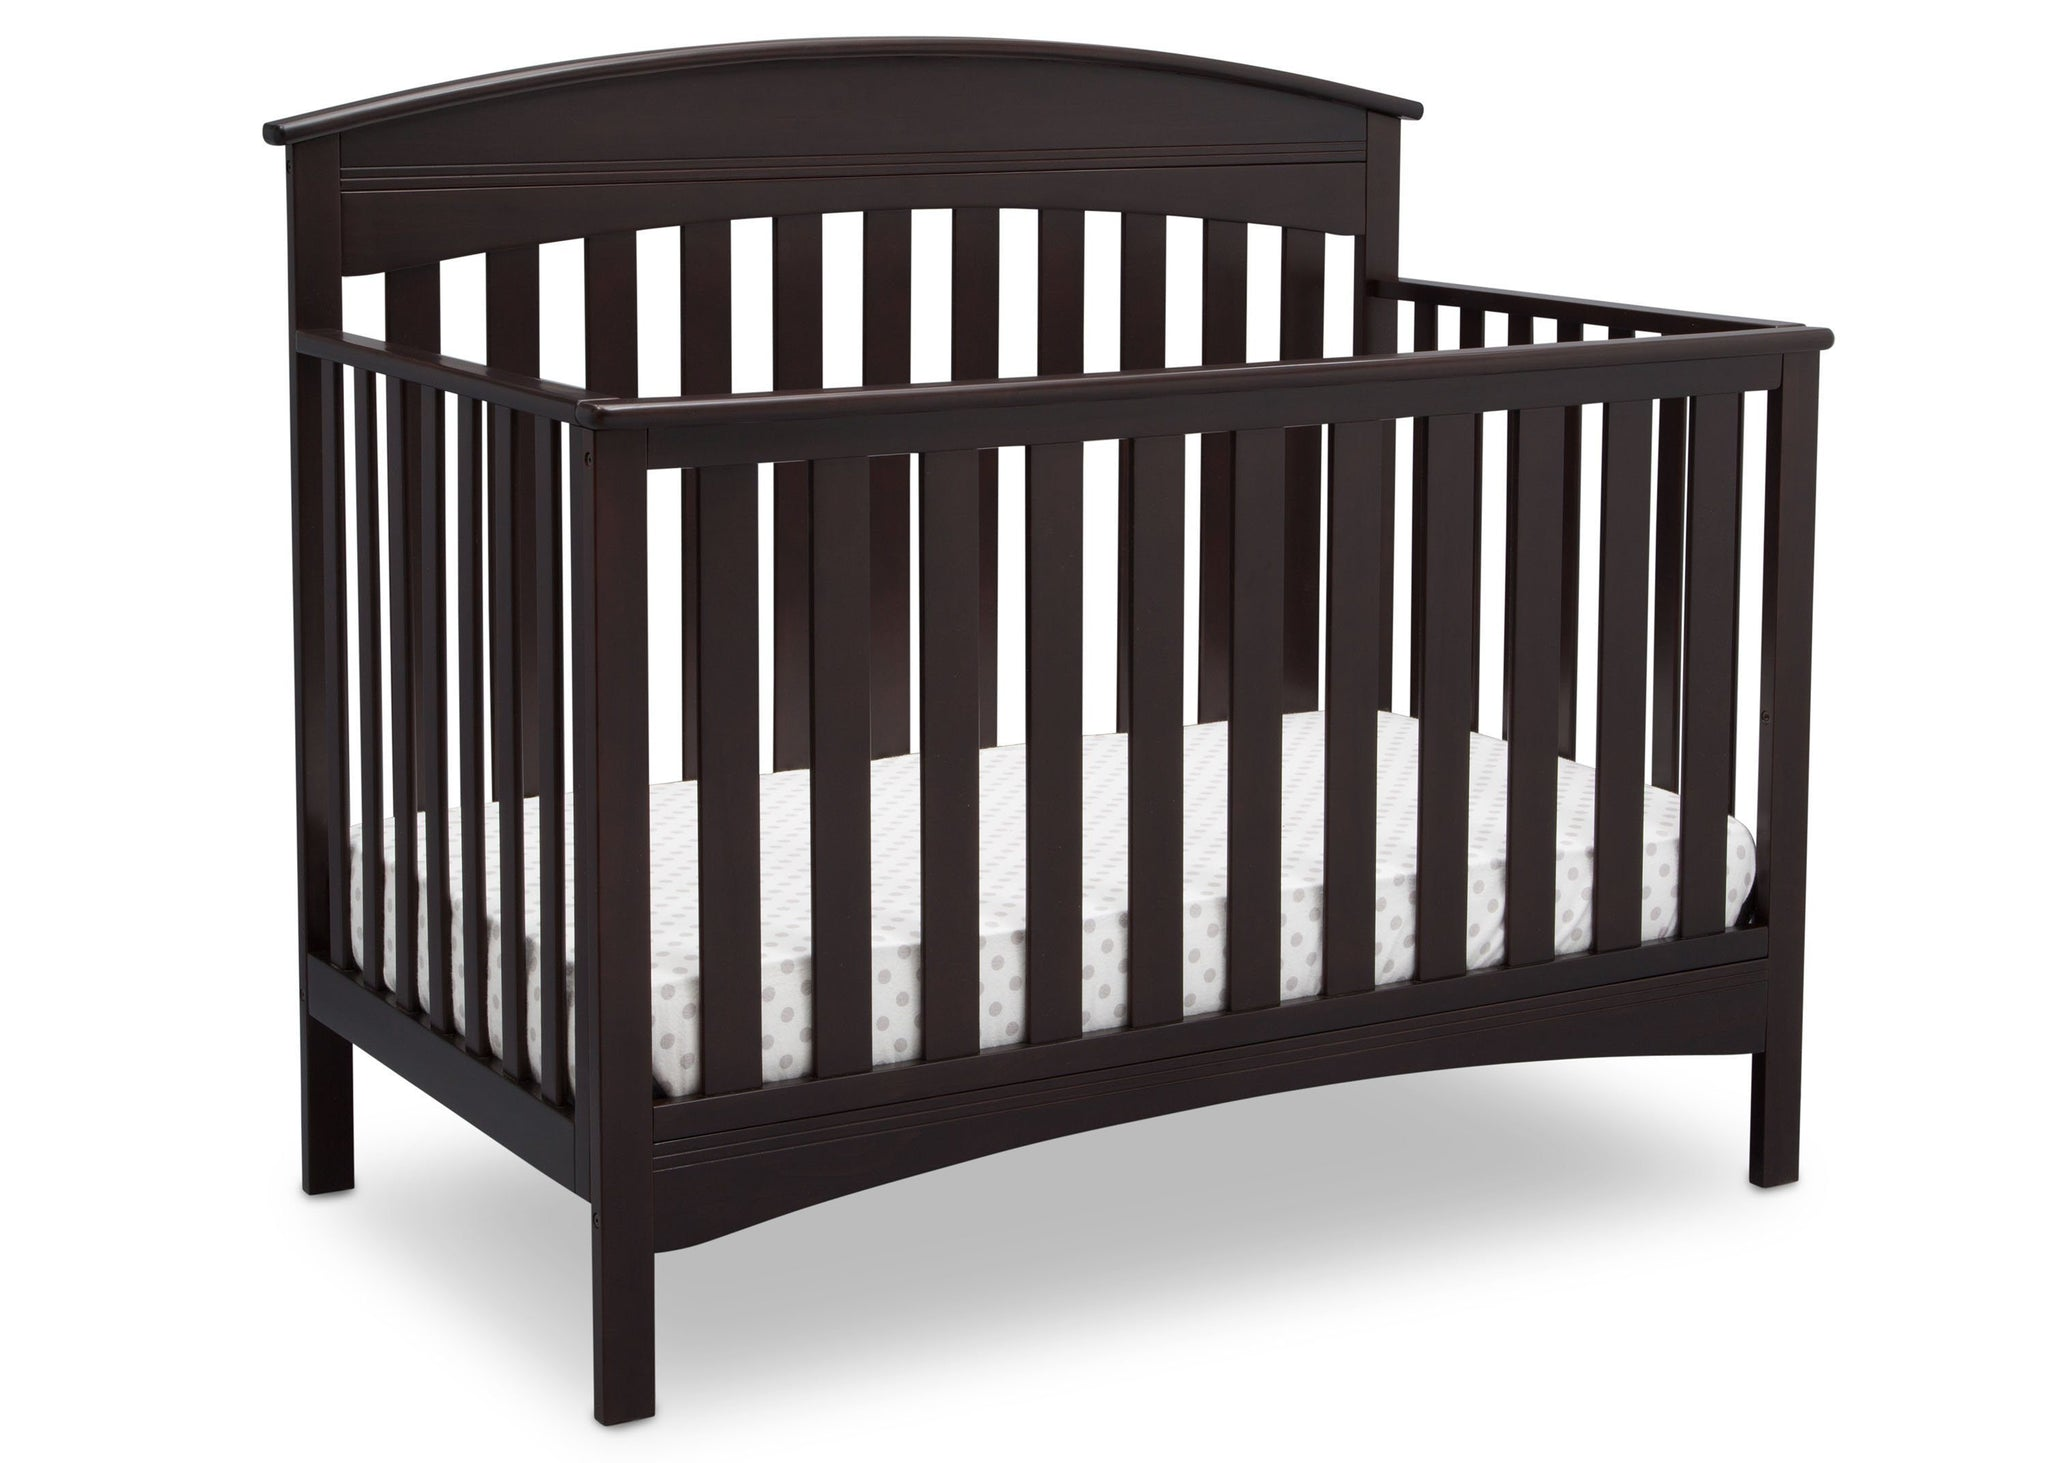 Delta Children Dark Espresso (958) Bennington Elite Arched 4-in-1 Convertible Crib, Crib Angle, c3c